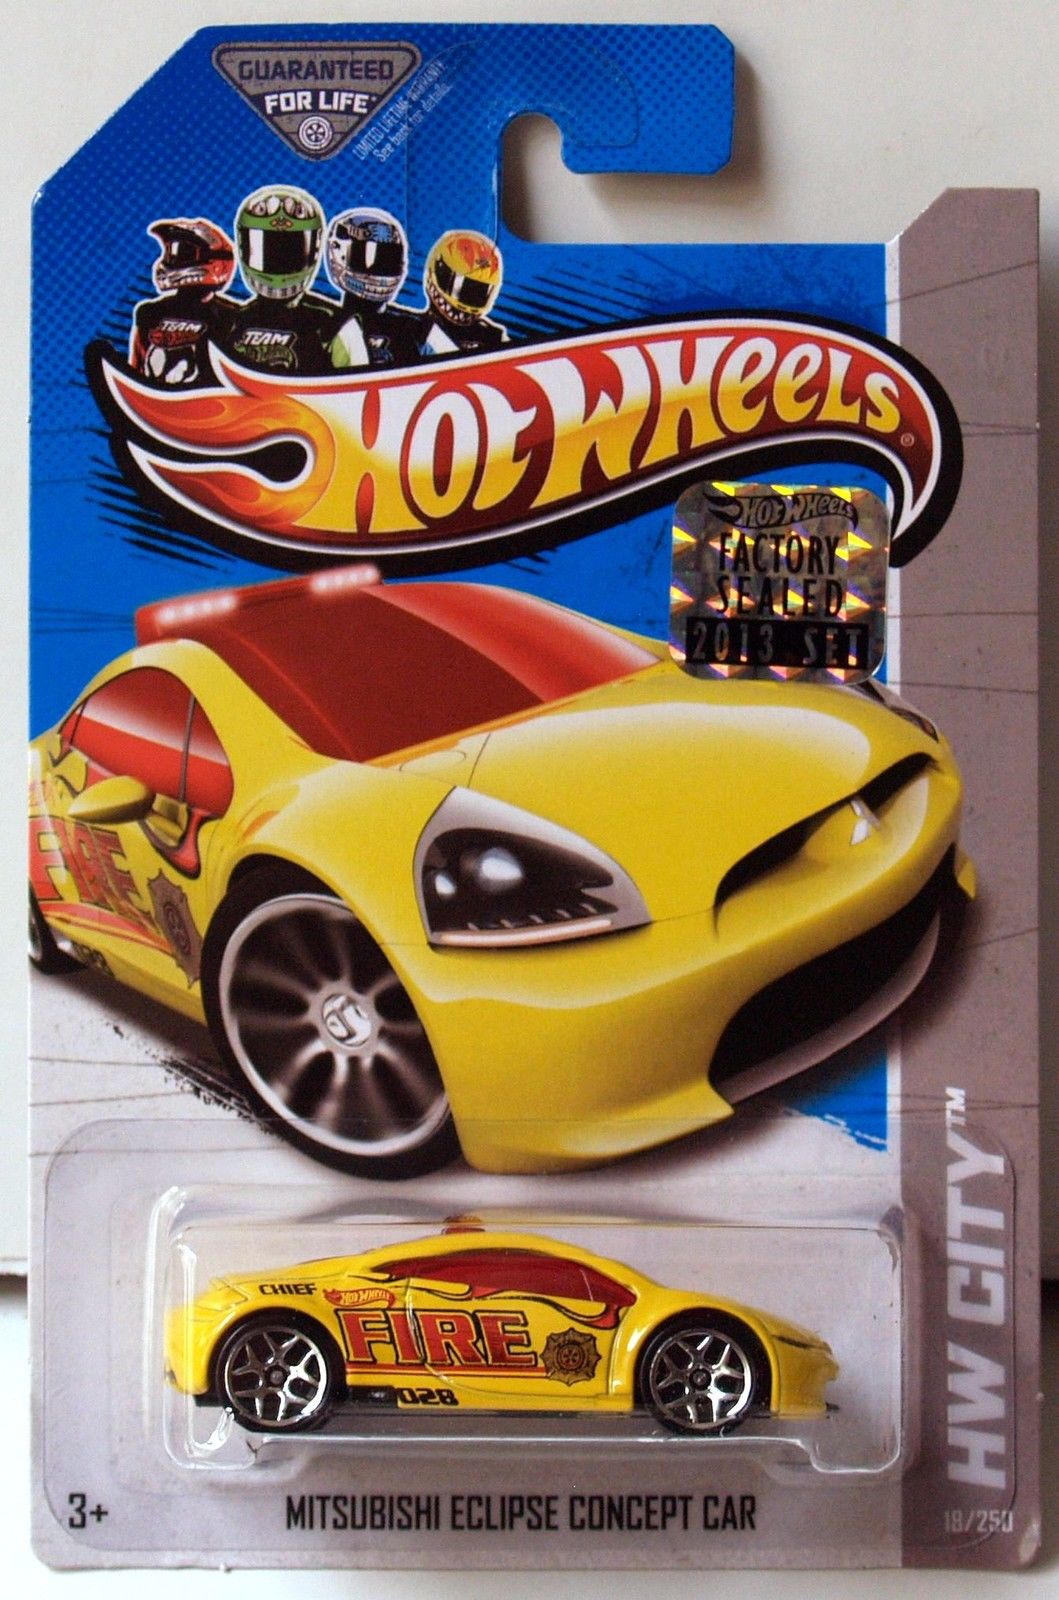 HOT WHEELS 2013 HW CITY RESCUE MITSUBISHI ECLIPSE CONCEPT CAR FACTORY SEALED